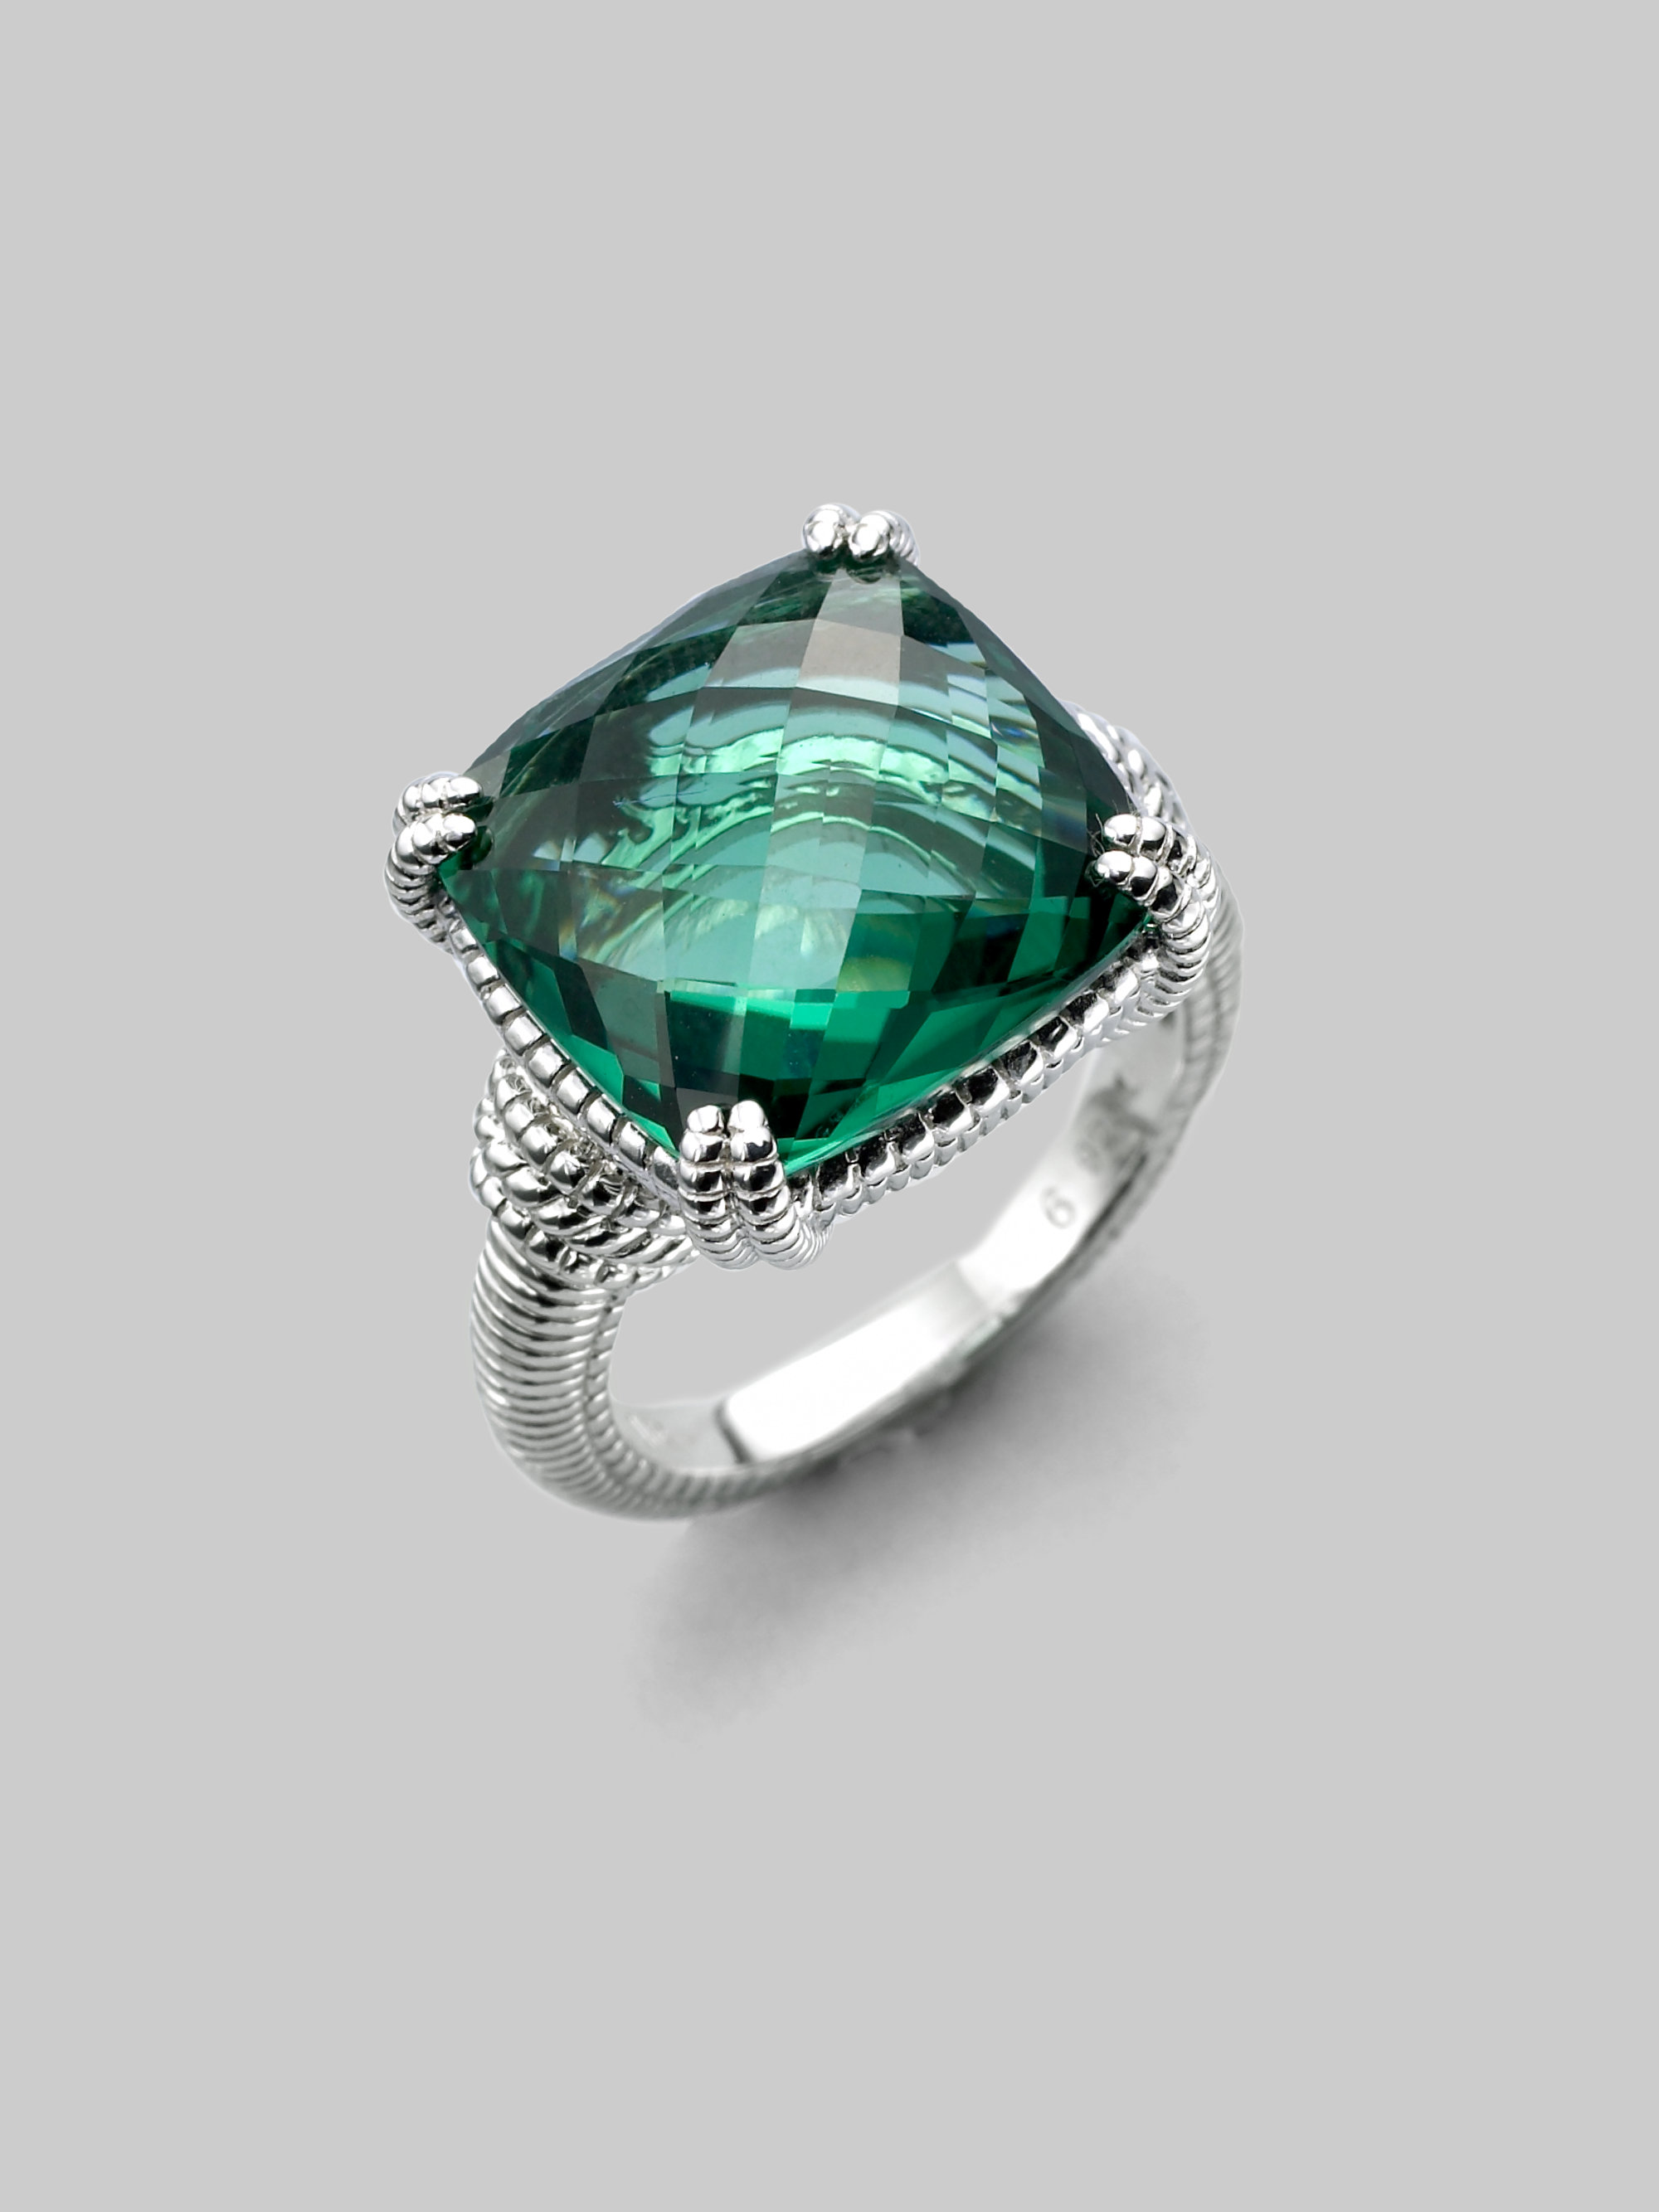 jewelry ring clear fine alexis normal diamond marquis engagement ice green rings lyst silver quartz sapphire product gallery sterling bittar cluster